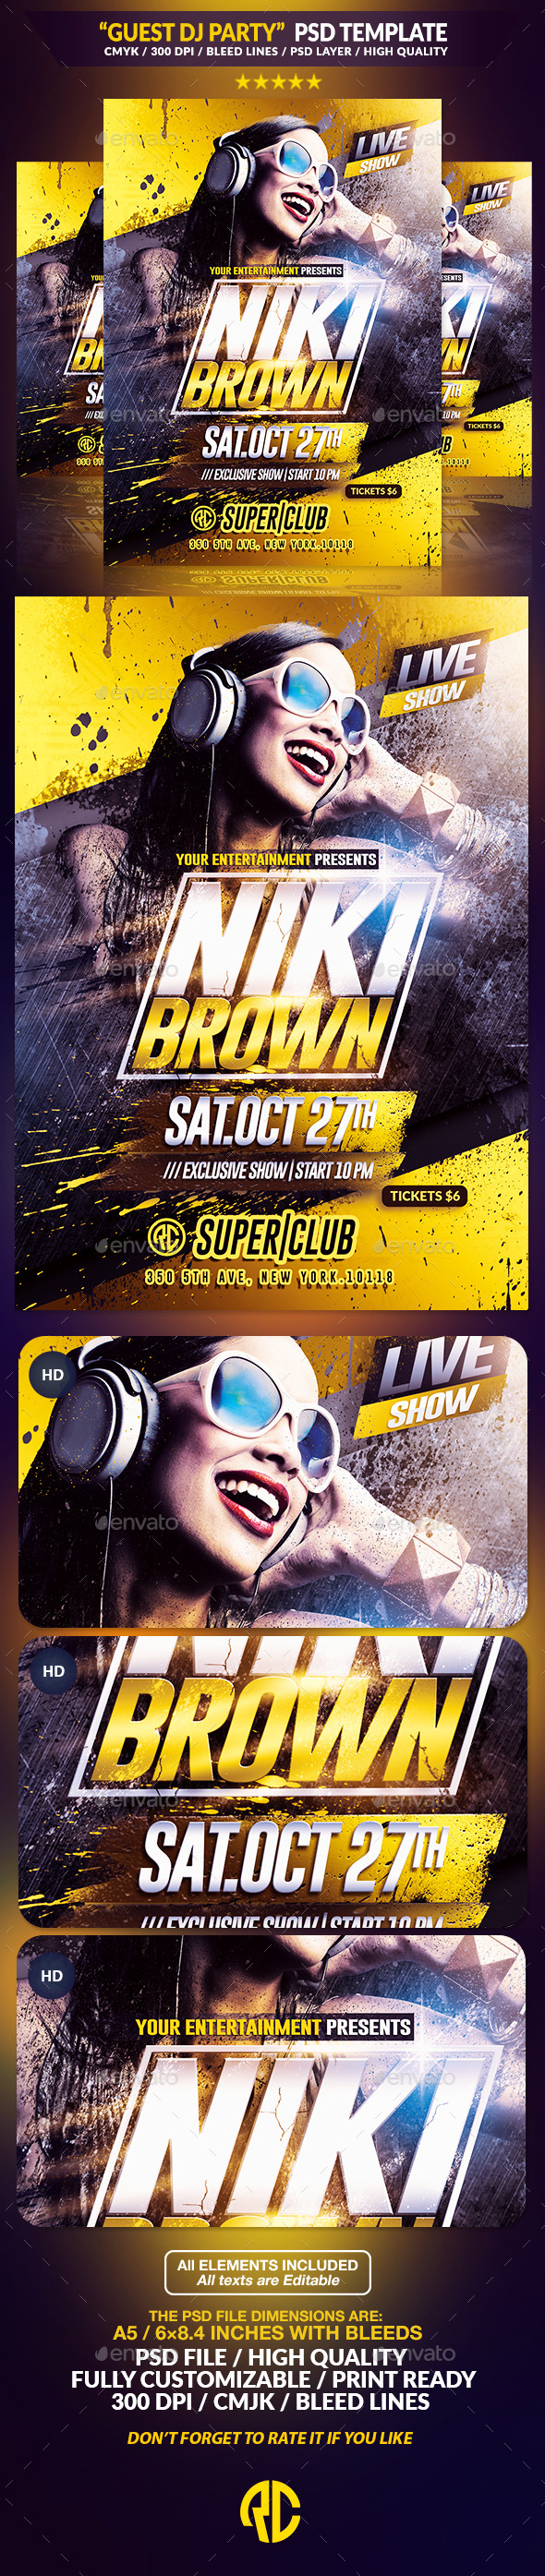 Live Dj Party | Psd Flyer Template - Clubs & Parties Events